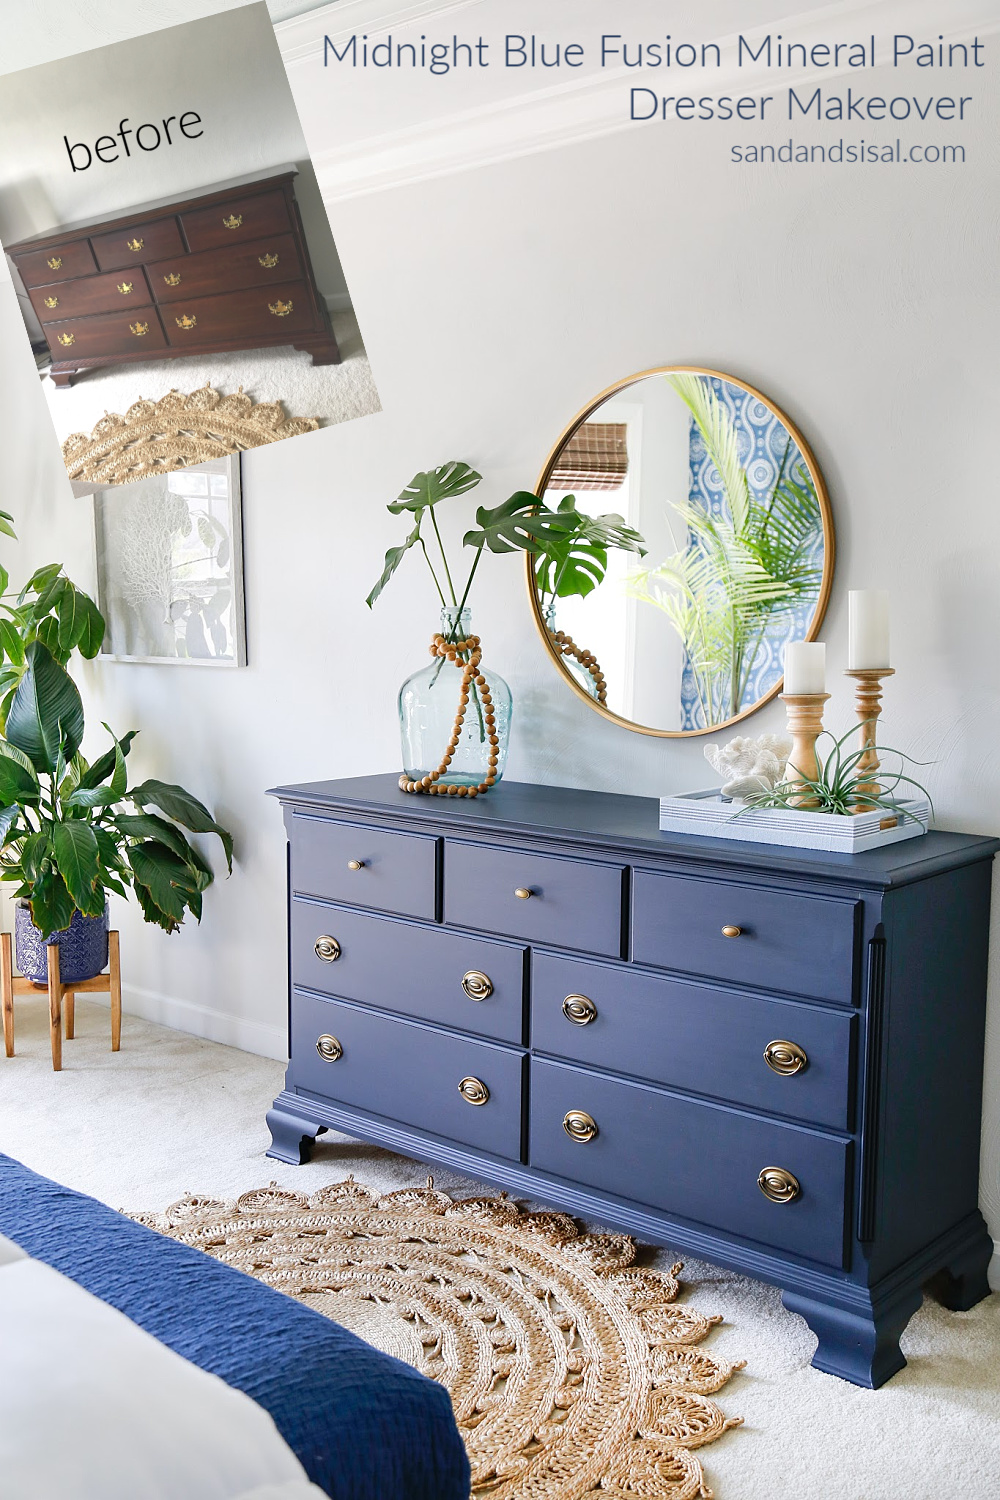 Midnight Blue Fusion Mineral Paint Dresser Makeover